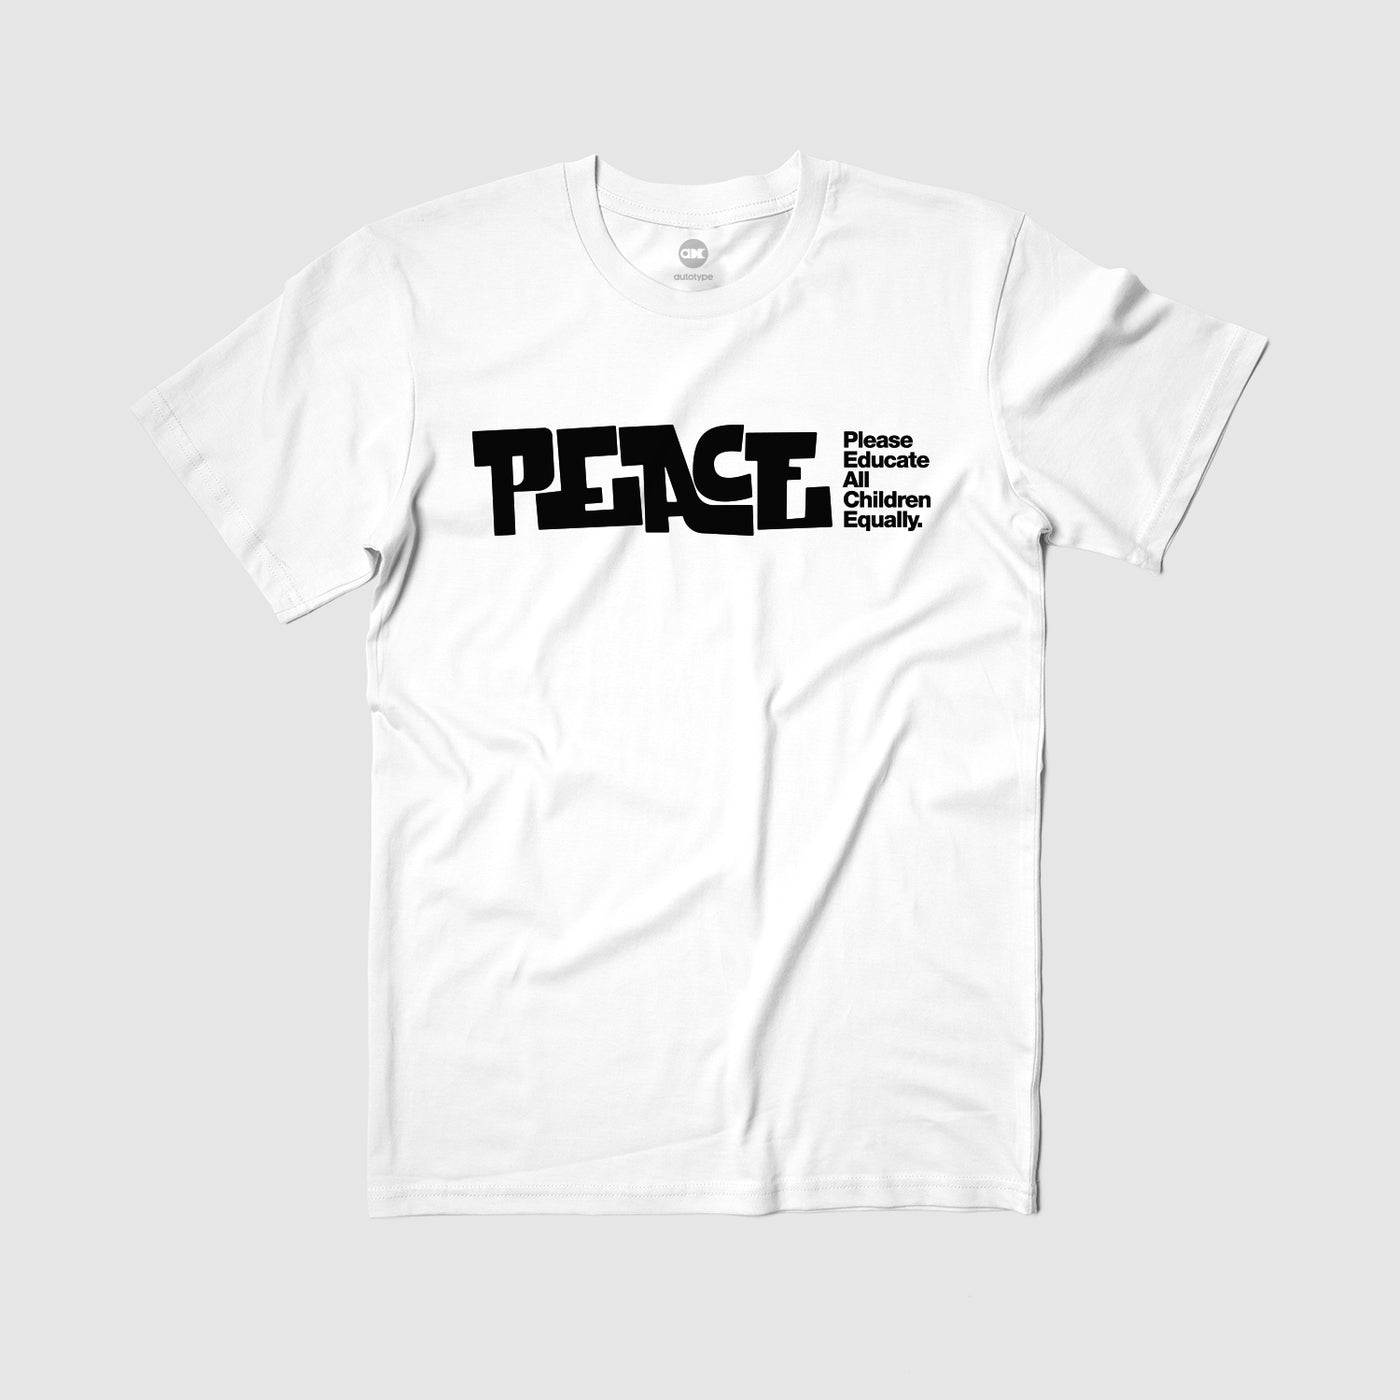 "PEACE ""Education"" Tee by Alyasha"